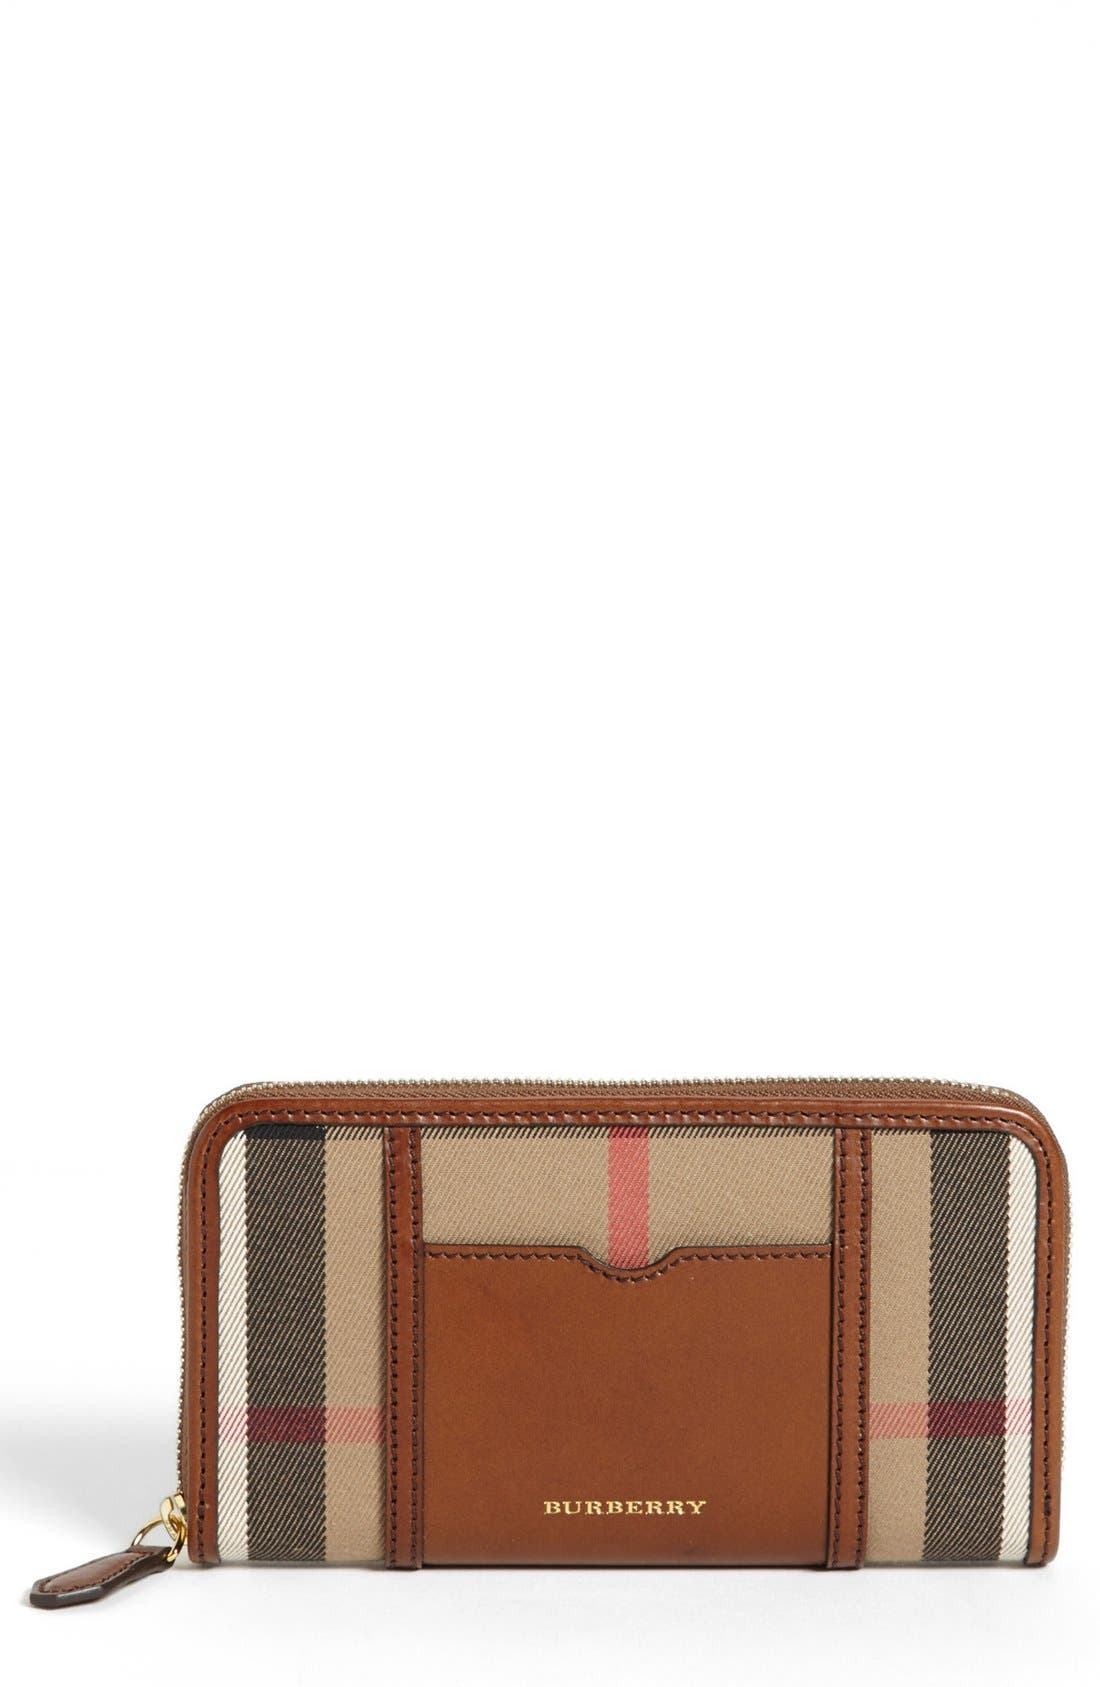 Main Image - Burberry 'House Check - Large' Zip Around Wallet